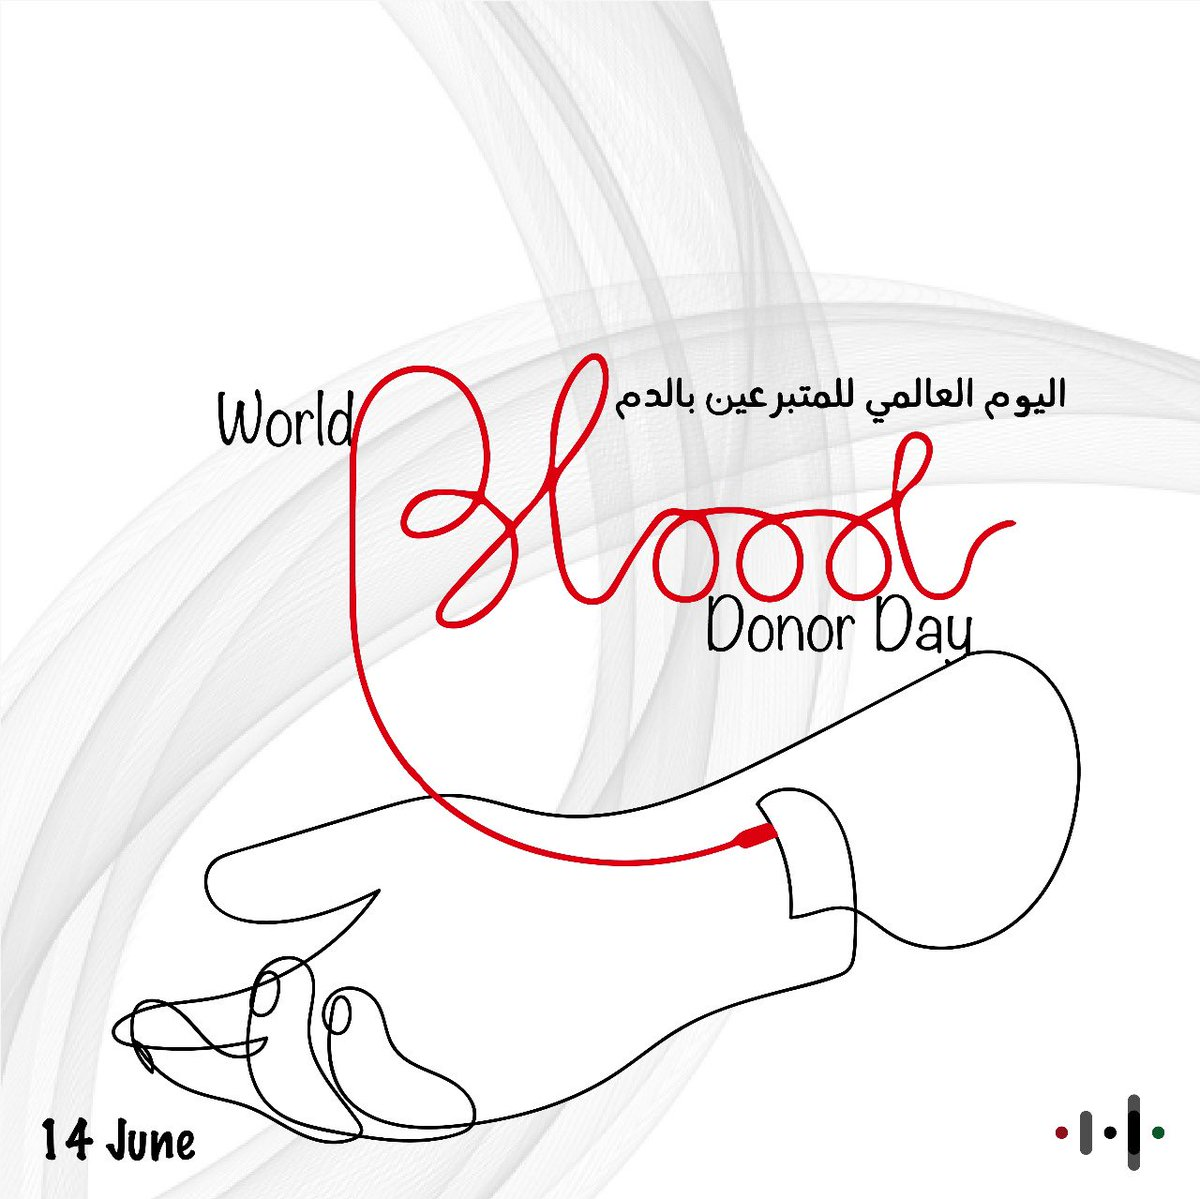 On June 14th, the world celebrates World Blood Donor Day, to raise awareness of the need for safe blood donation campaigns to strengthen the healthcare system, meet the needs of all patients and contribute to saving their lives, this is a special day to thank blood donors. https://t.co/FjT9bac6eF